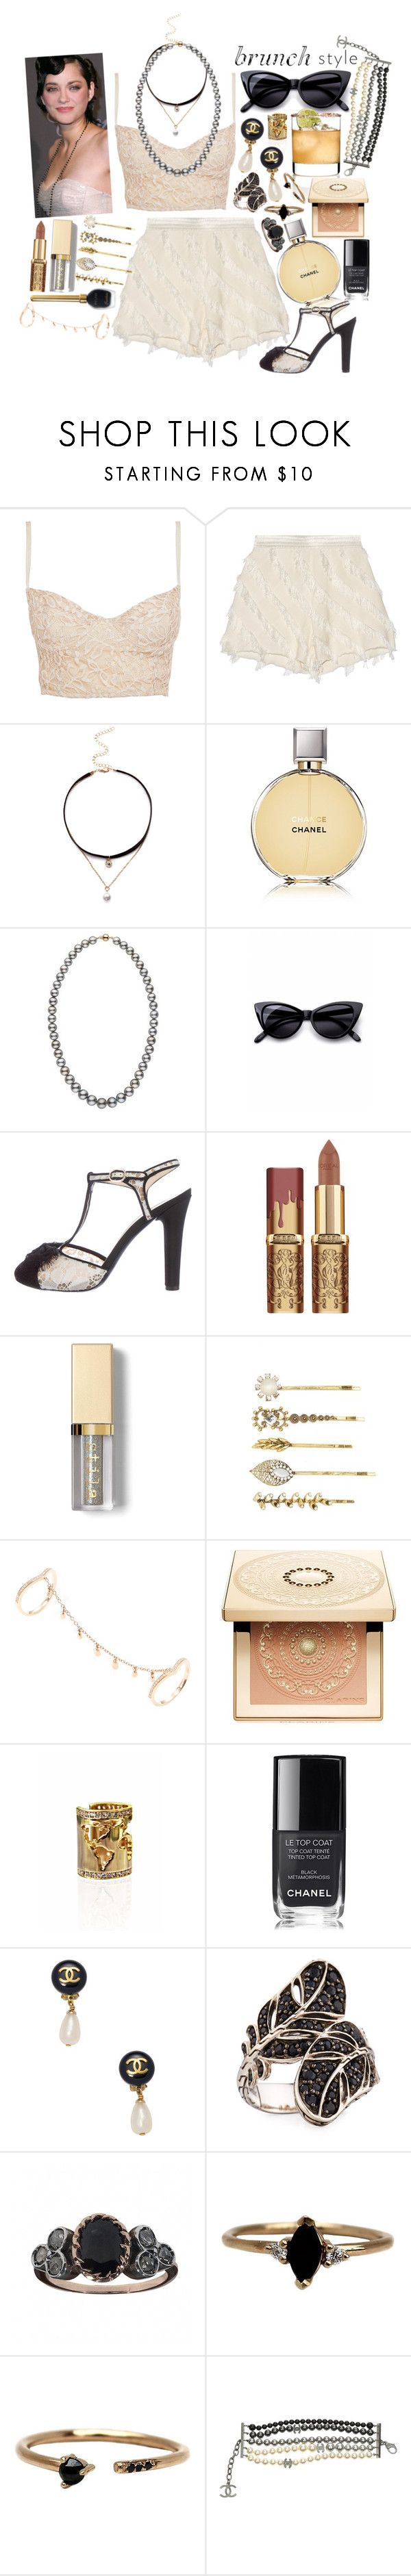 """""""Just Another Day - Lady Gaga"""" by leo8august ❤ liked on Polyvore featuring Miso, Sandro, Chanel, Retrò, Stila, Tasha, Shay, Clarins, Artelier and John Hardy"""